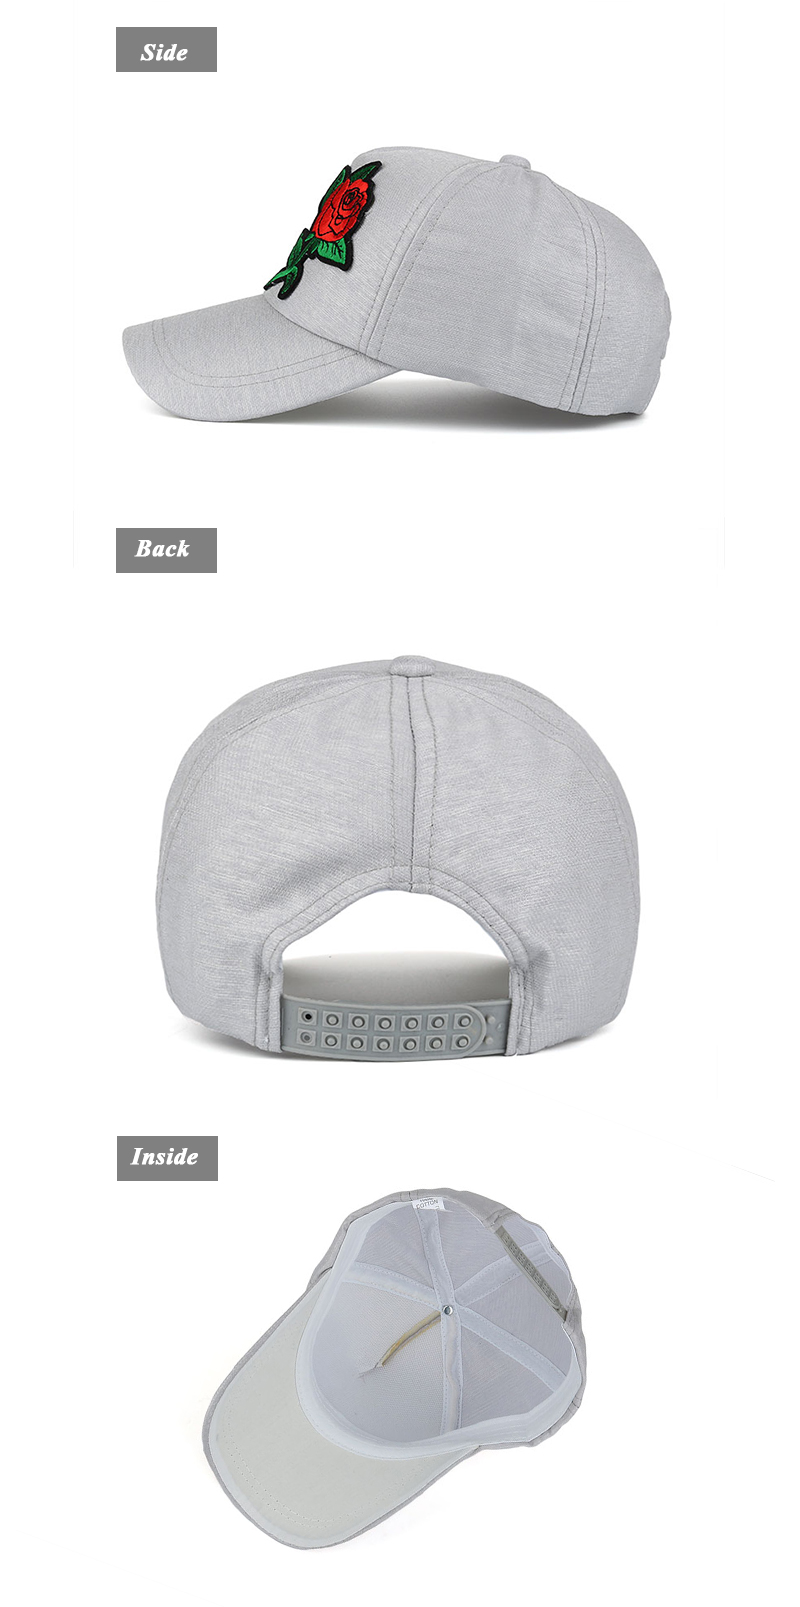 Small Embroidered Flower Snapback Cap - Side, Rear and Inside Views